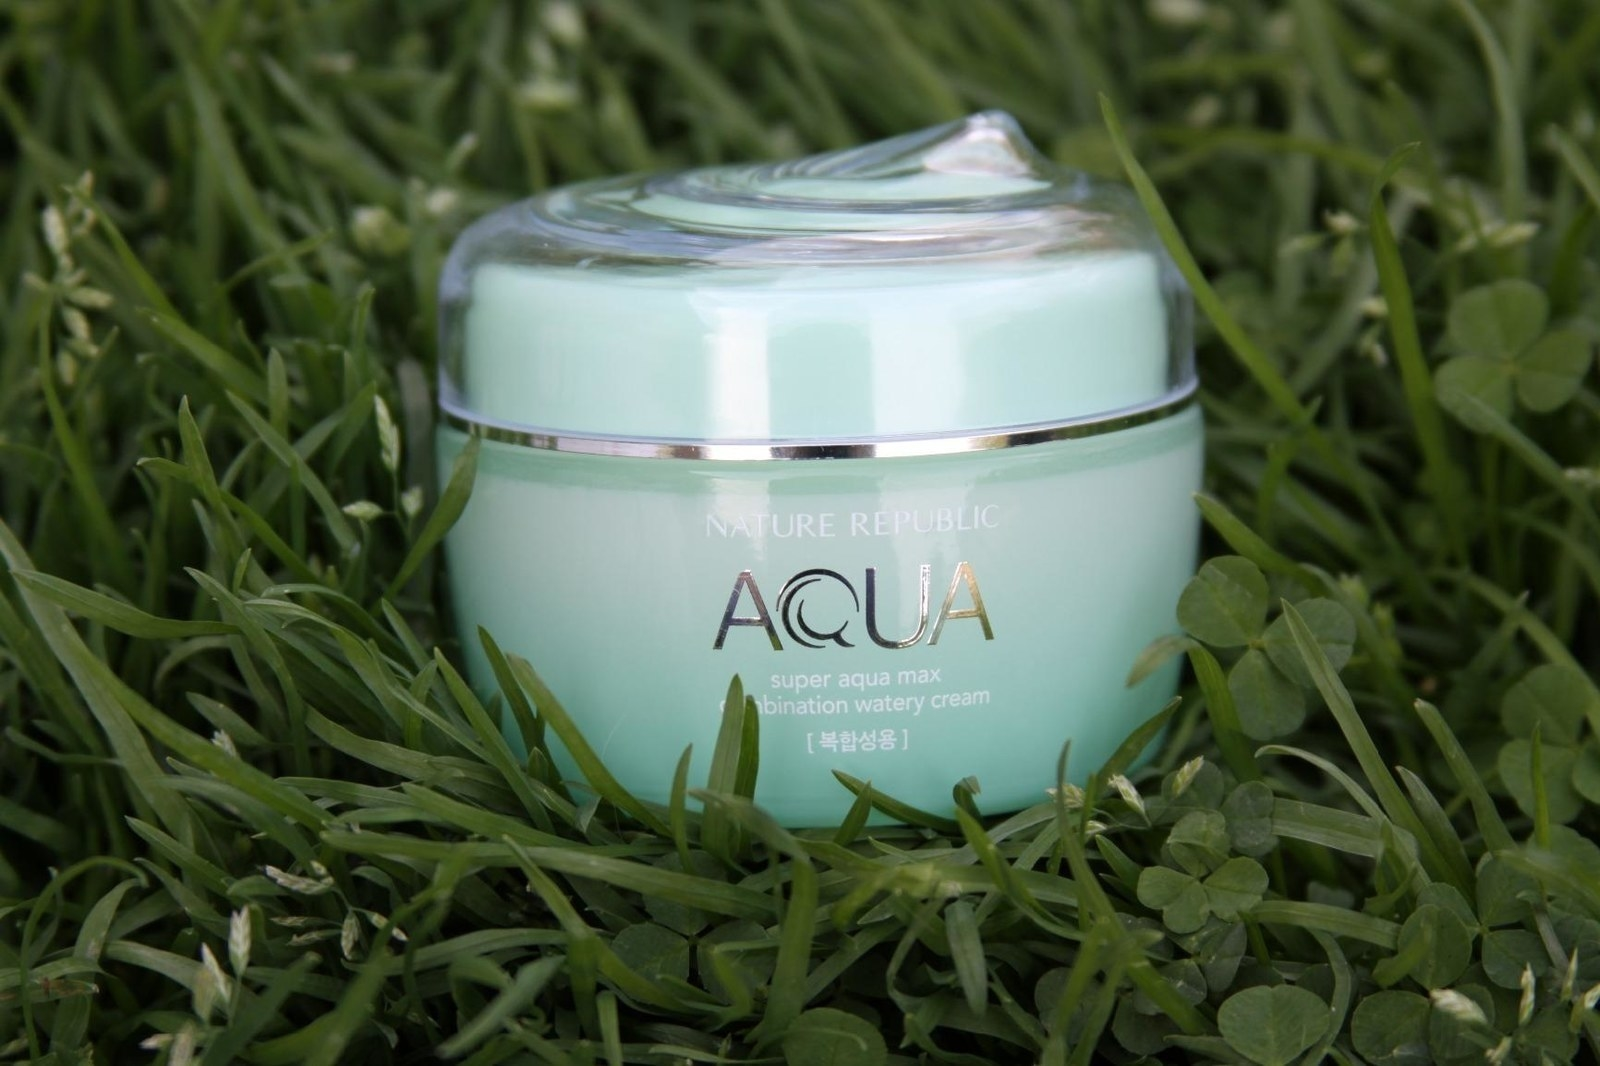 Reviewer photo of the jar of moisturizer